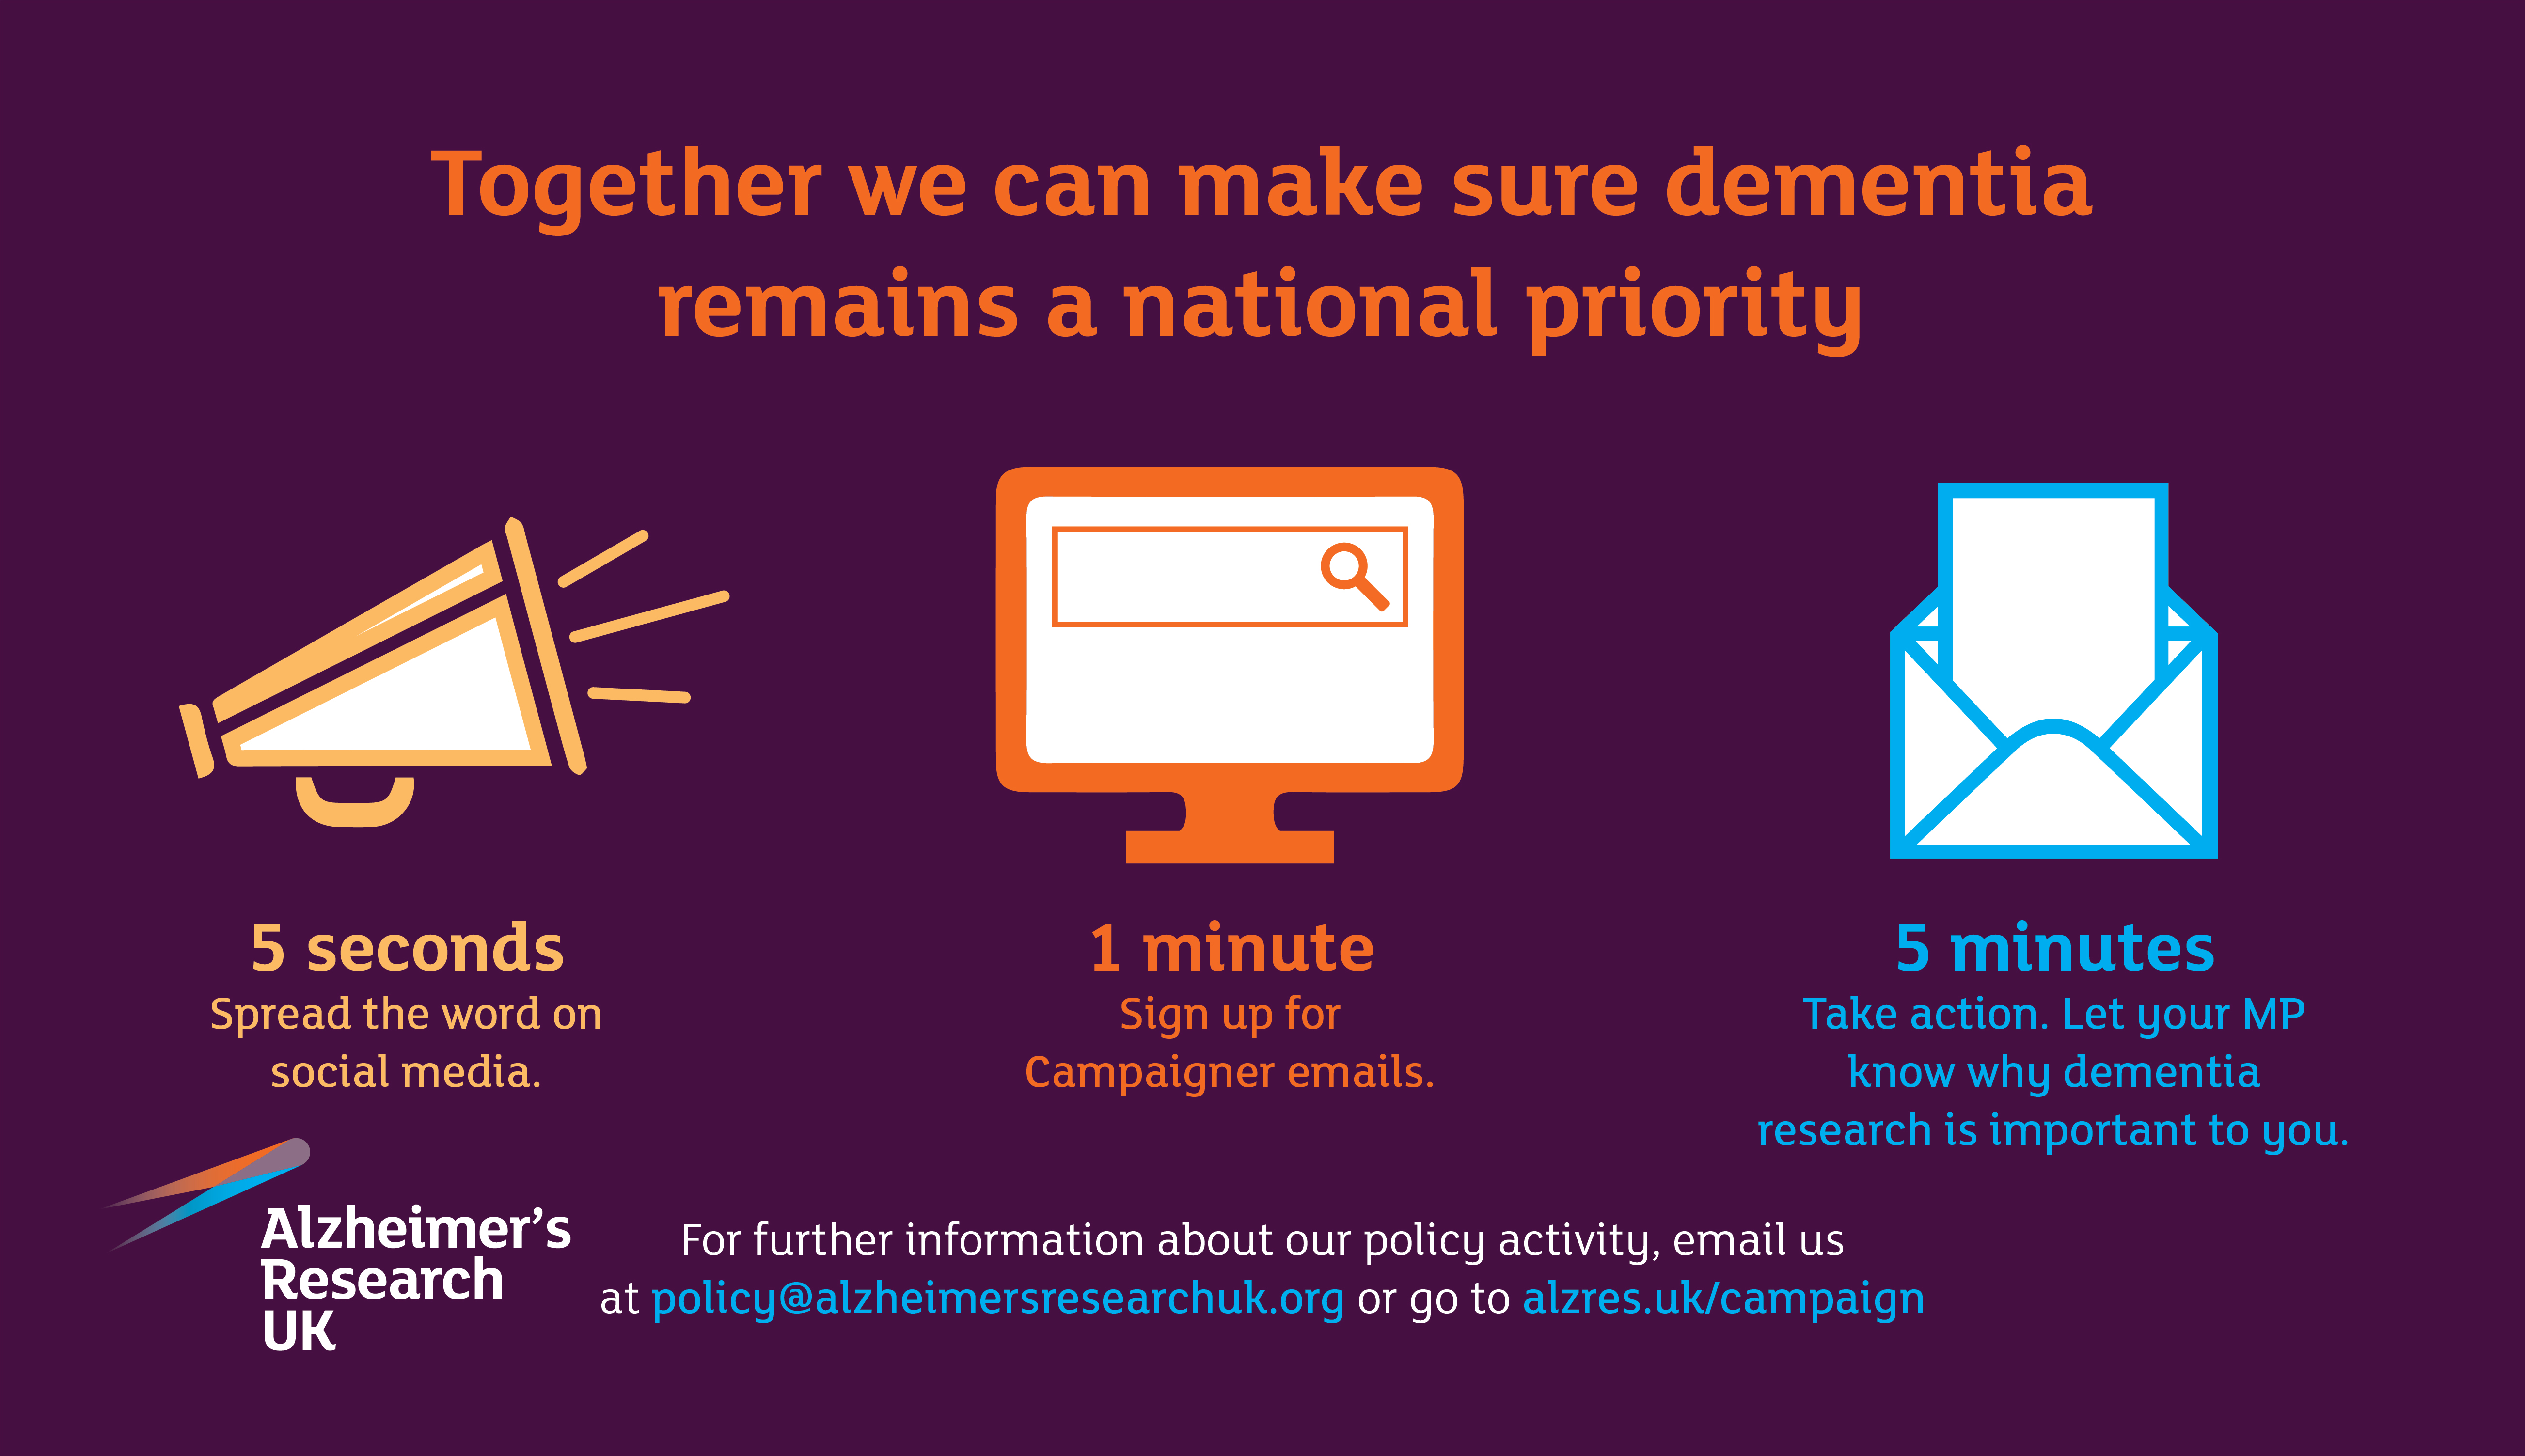 Campaign your way toolkit alzheimers research uk download image spiritdancerdesigns Images